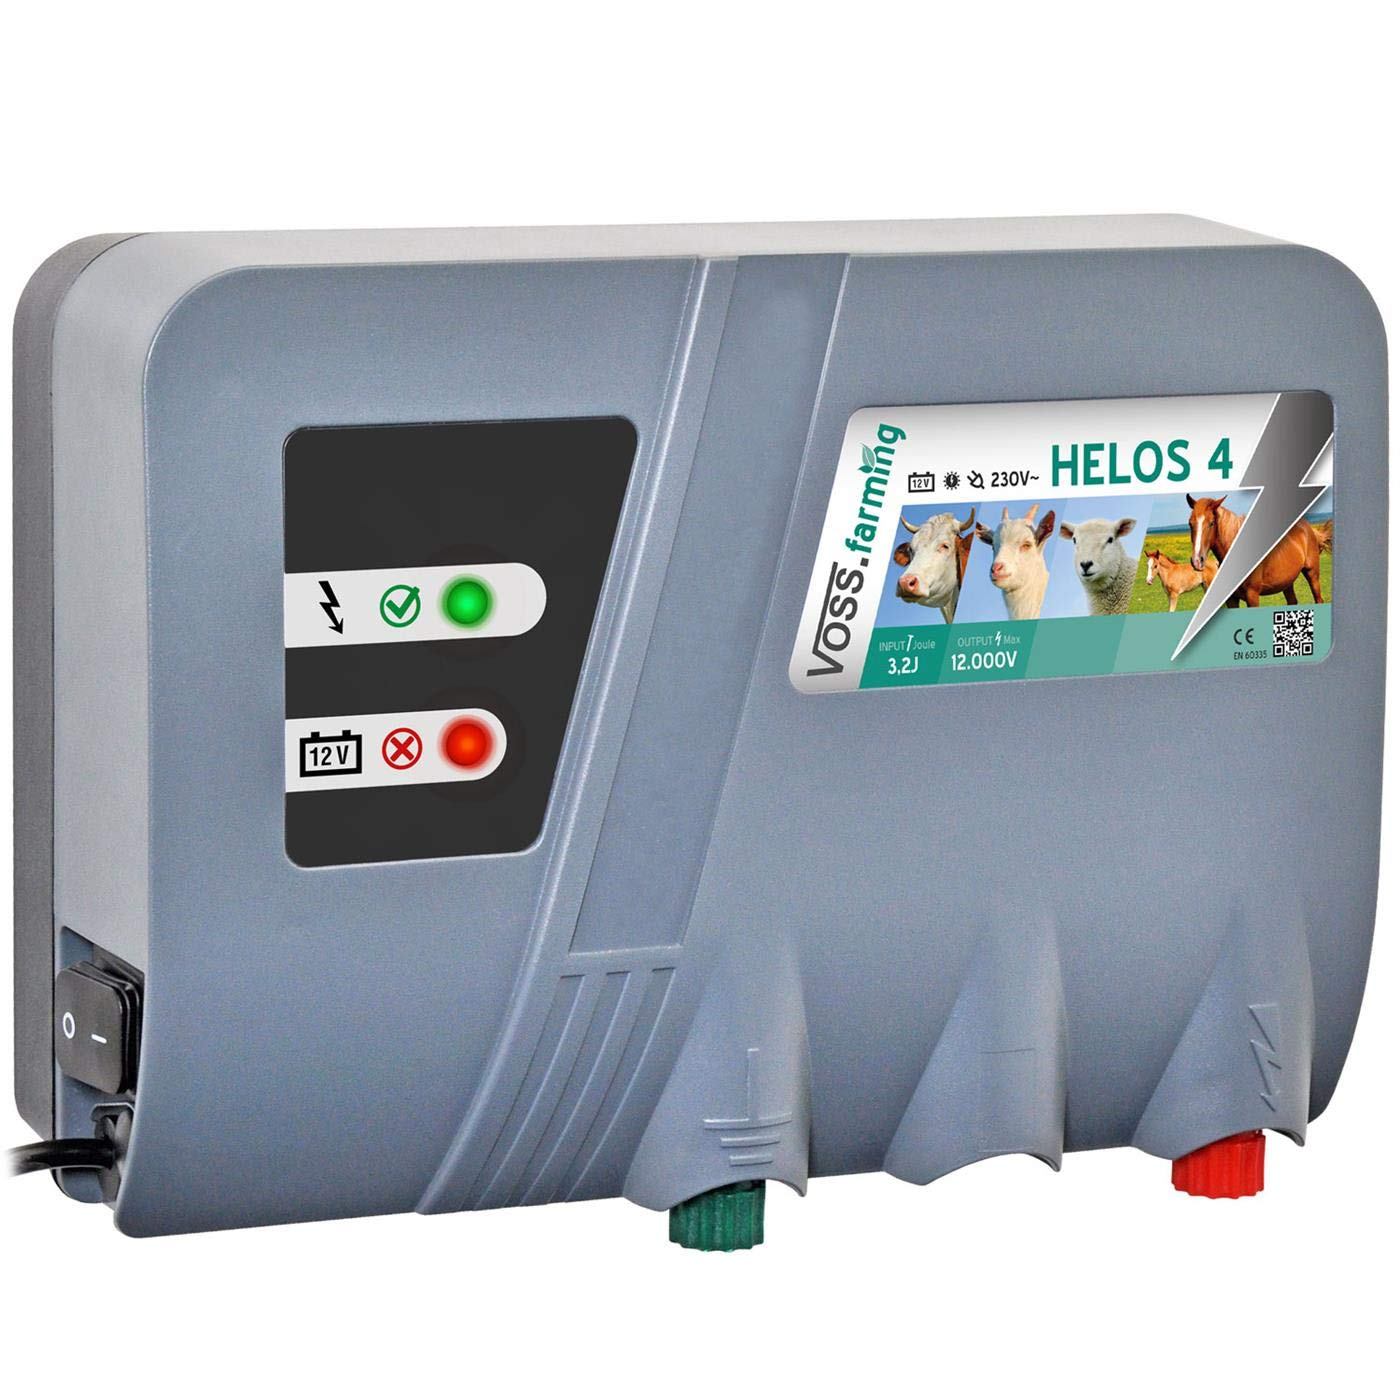 VOSS.farming Electric Fence Energiser Helos 4   12 V Battery Mains   Dual-Power Fencer   3.2 J   9600 V   Mains Adapter Not Included